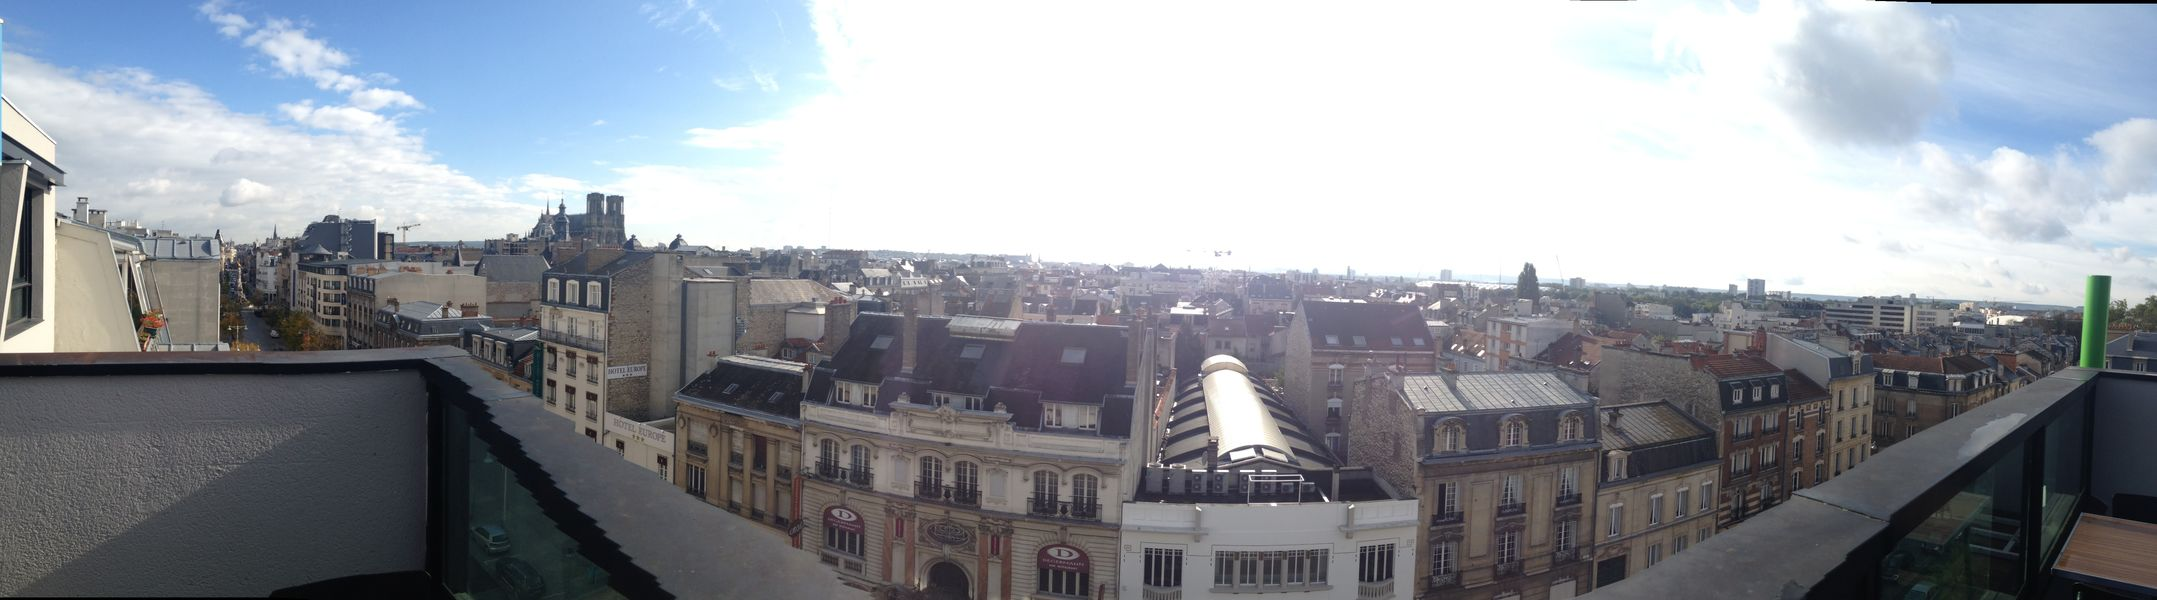 Holiday Inn Reims - City Centre Vue rooftop